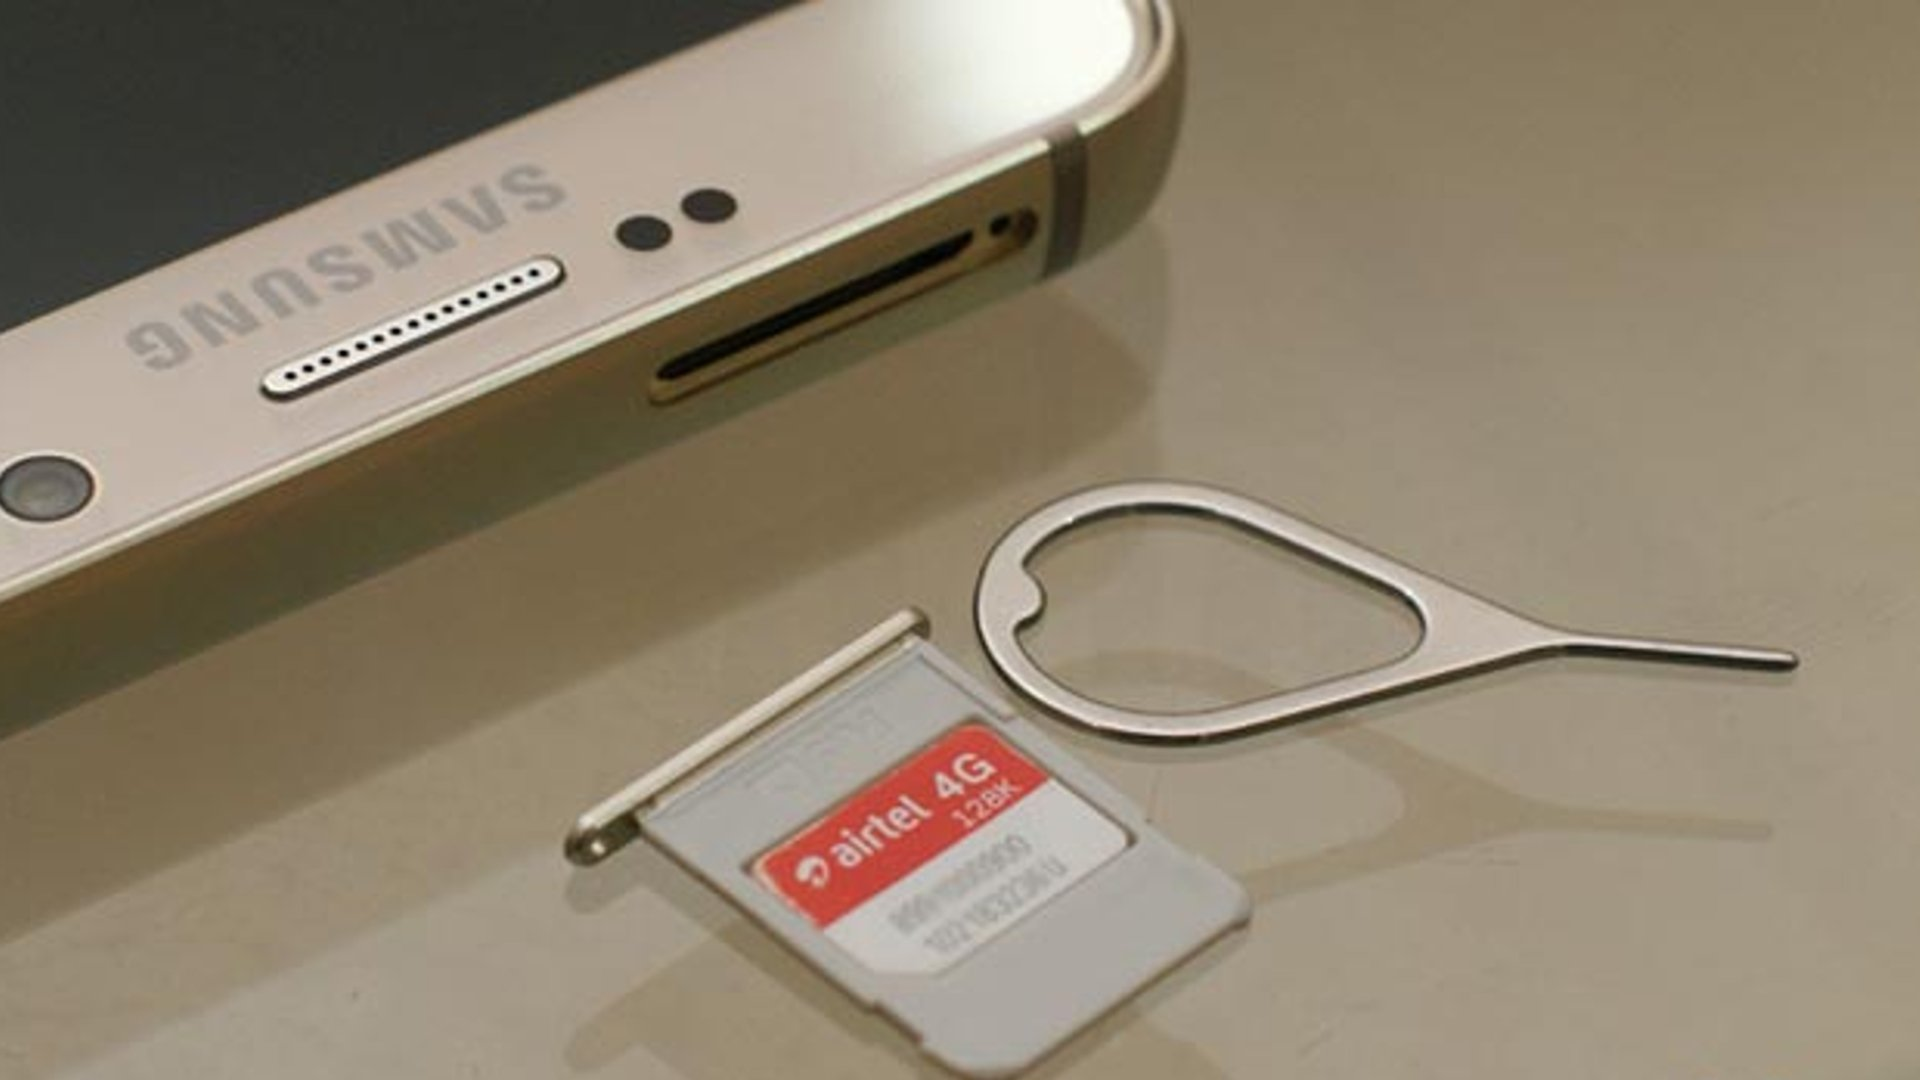 Samsung Galaxy Note 5 - SIM Card Guide